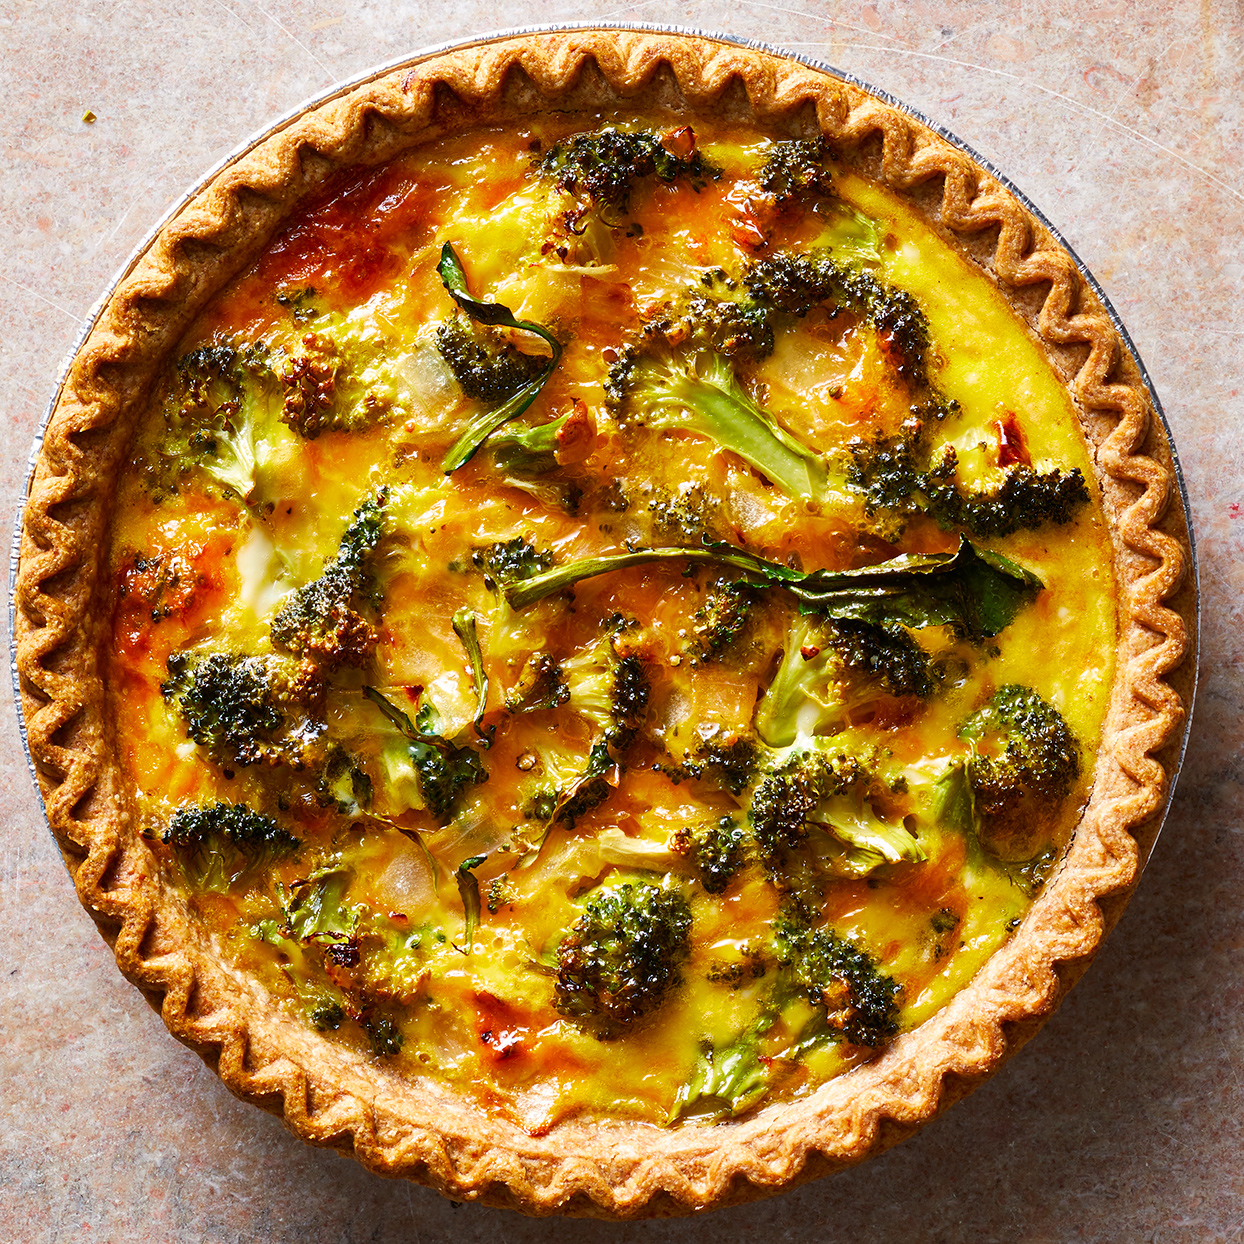 Make-Ahead Broccoli-Cheddar Quiche